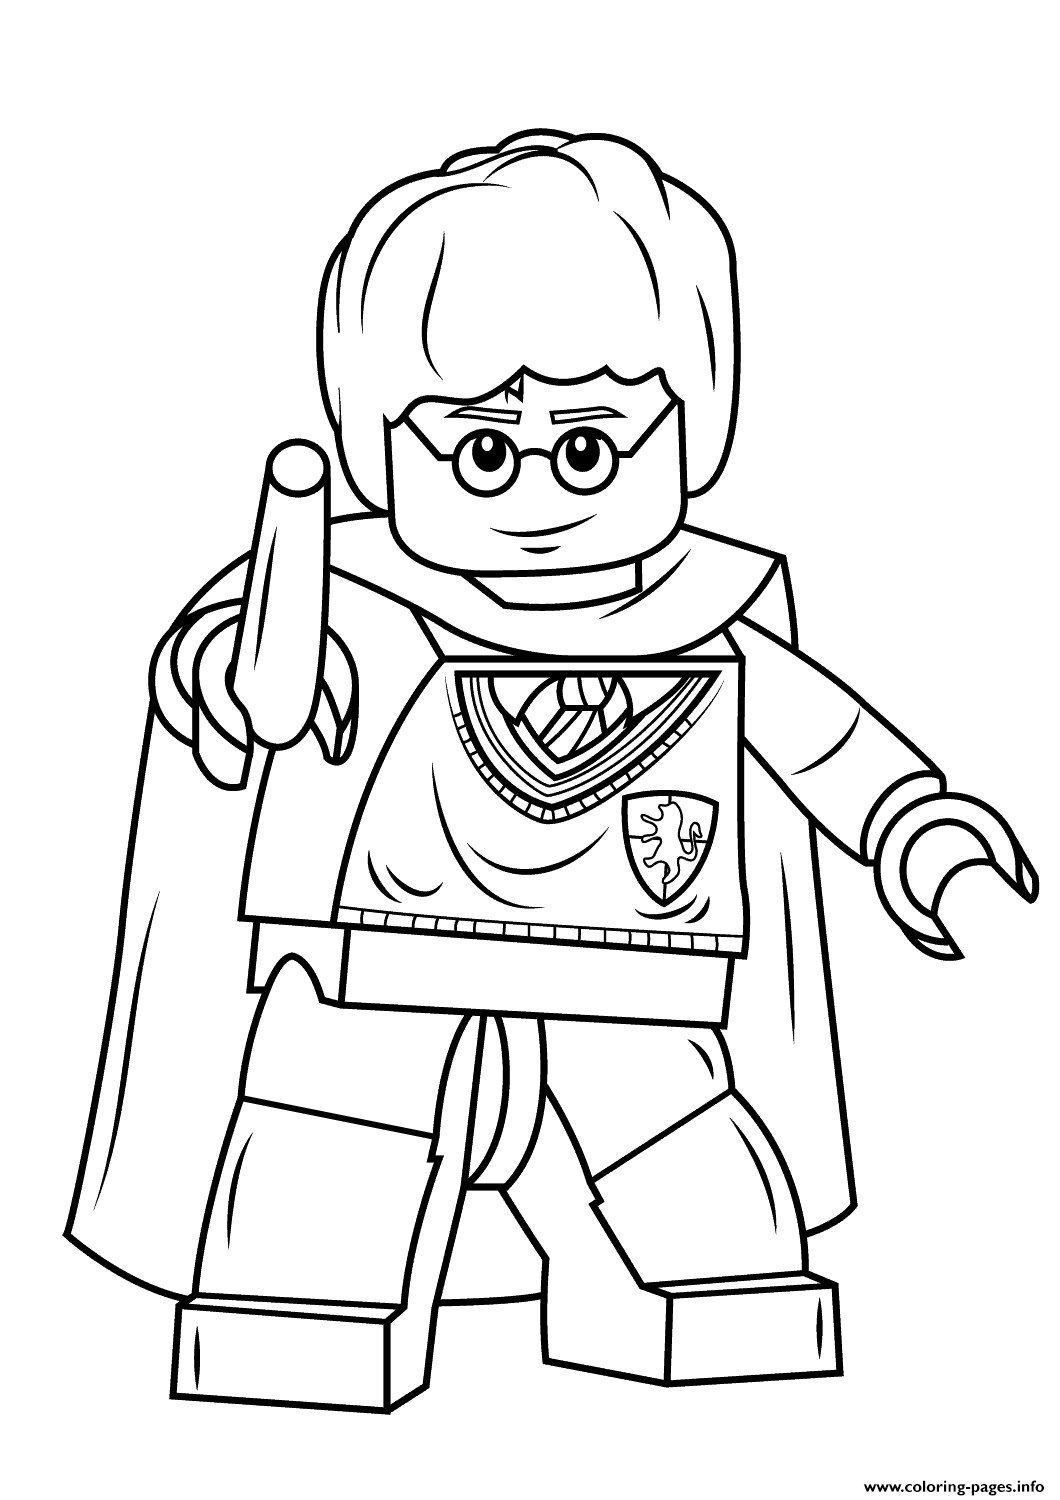 1060x1500 Print Lego Harry Potter With Wand Coloring Pages Lego World